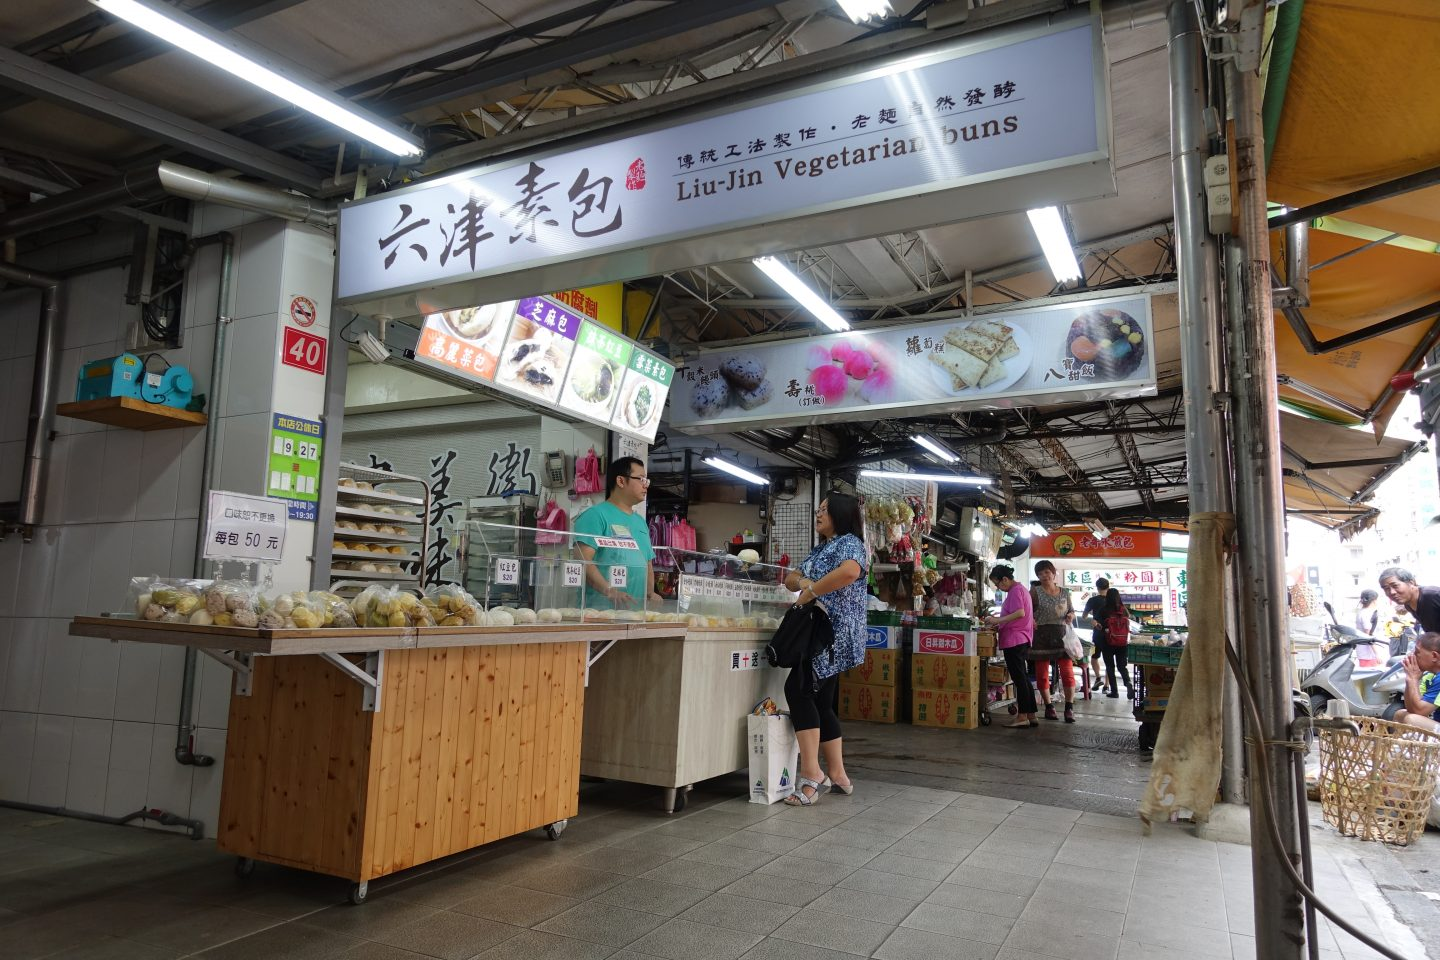 A guide to vegan food in Taipei - Liu-Jin Vegetarian buns